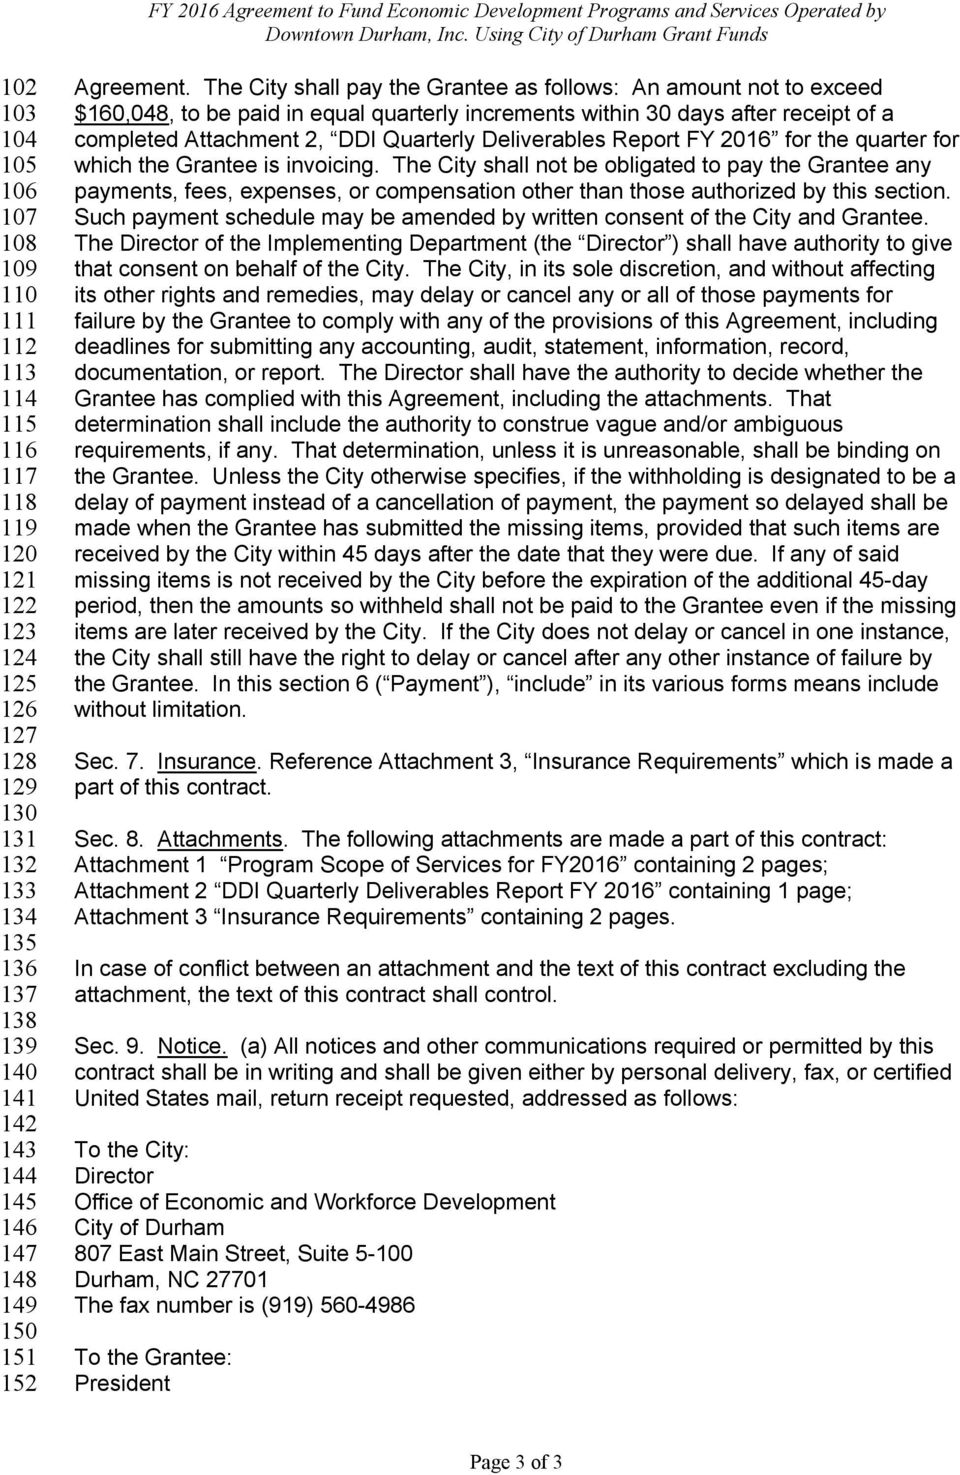 The City shall pay the Grantee as follows: An amount not to exceed $160,048, to be paid in equal quarterly increments within 30 days after receipt of a completed Attachment 2, DDI Quarterly